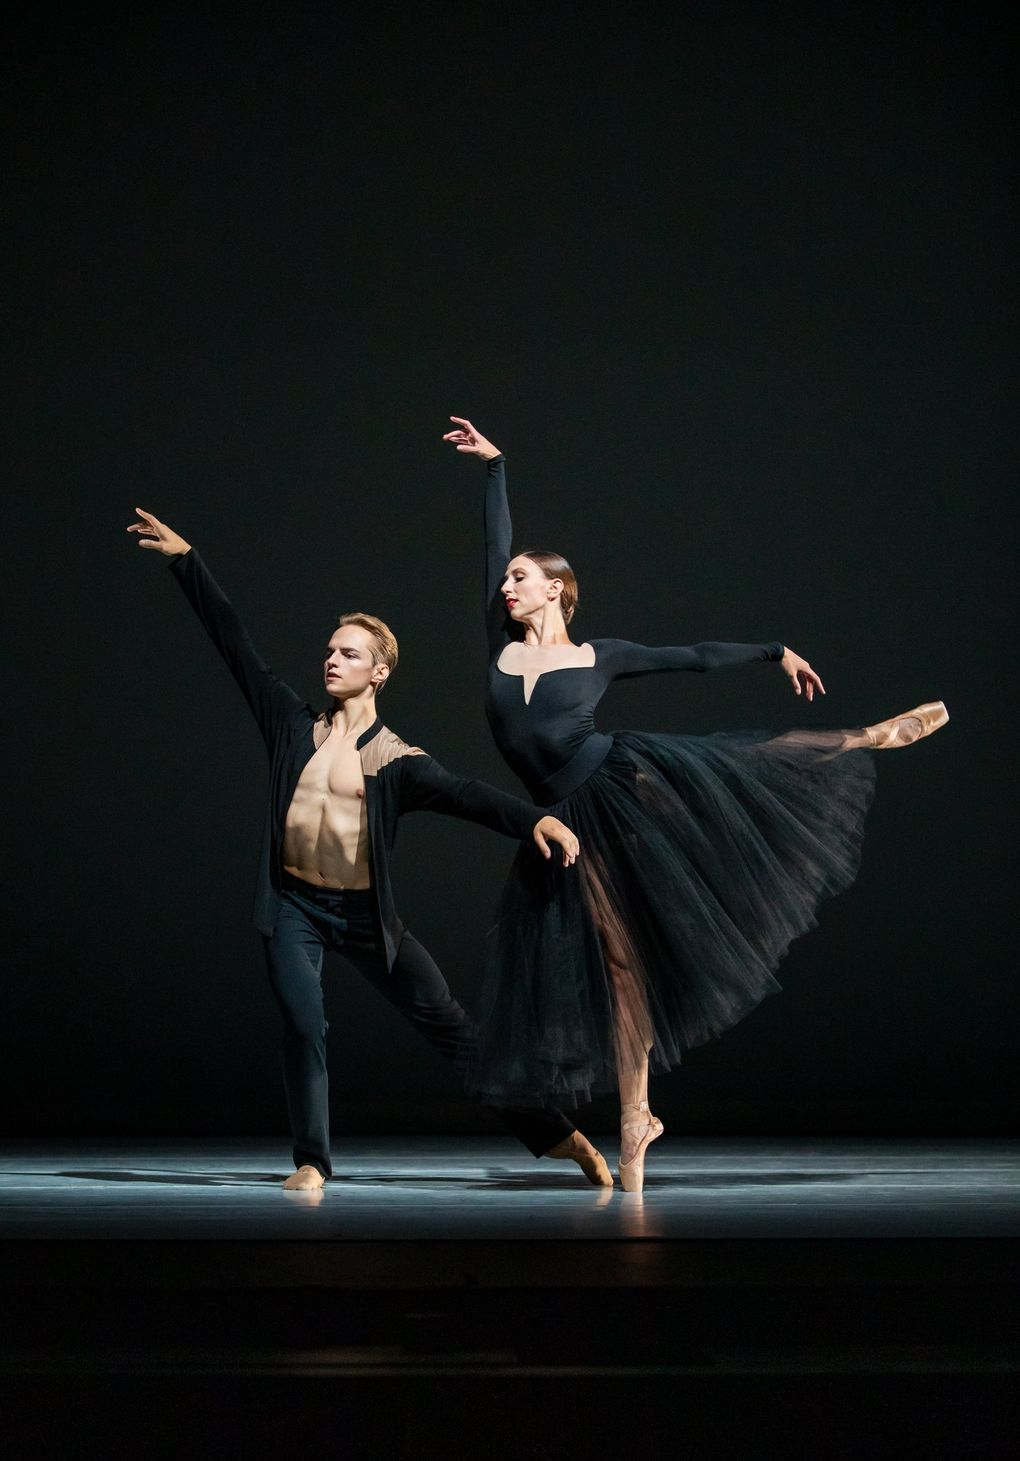 """Pacific Northwest Ballet principal dancer Dylan Wald, left, and soloist Elle Macy in Jessica Lang's """"Ghost Variations,"""" which PNB will be presenting in a triple bill along with works by Ulysses Dove and Alonzo King Nov. 5-7. (Lindsay Thomas)"""